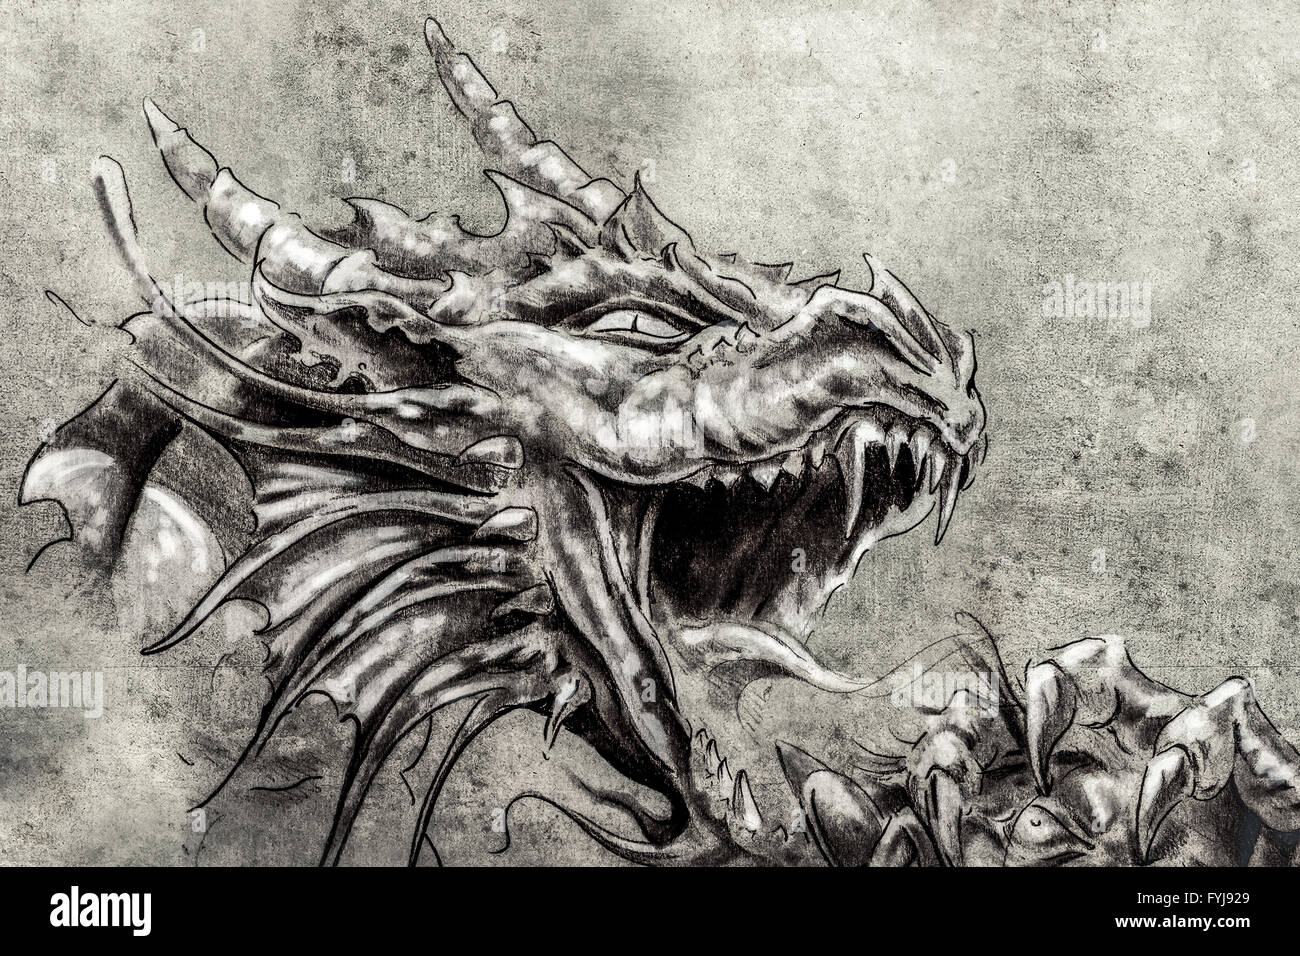 Tattoo art, sketch of a anger medieval dragon - Stock Image